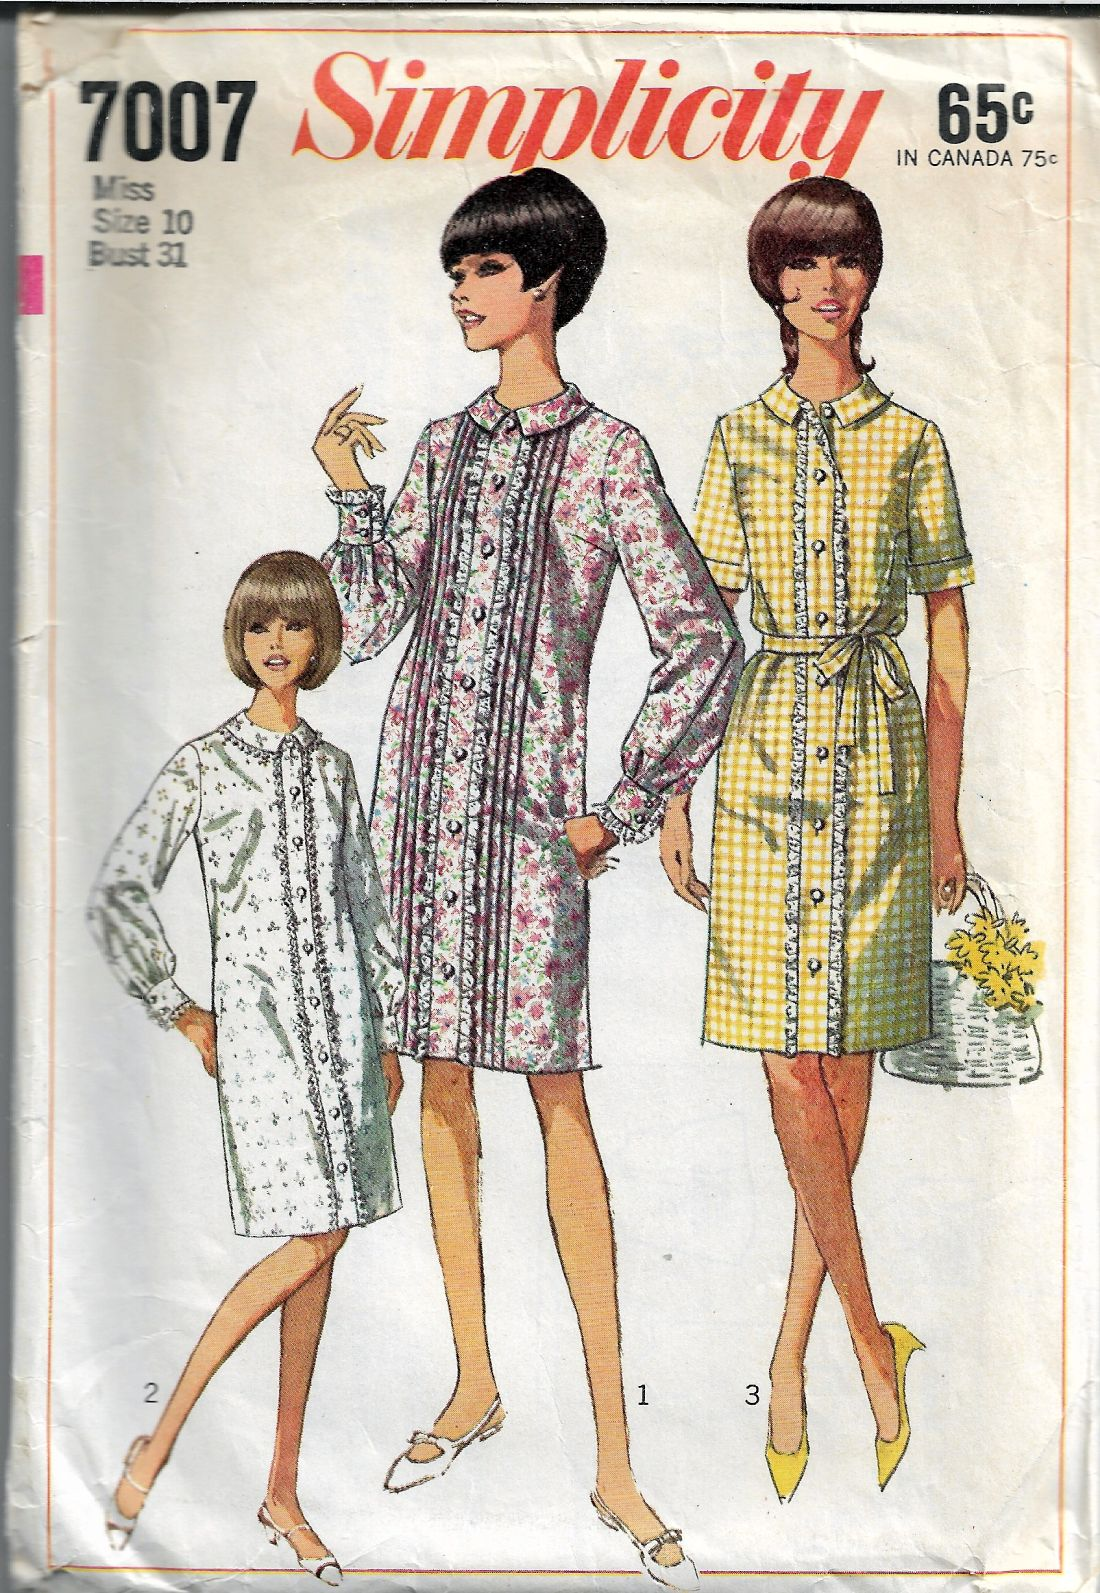 Simplicity 7007 Ladies One-Piece A Line Dress Vintage 1960's Sewing Pattern - VintageStitching - Vintage Sewing Patterns